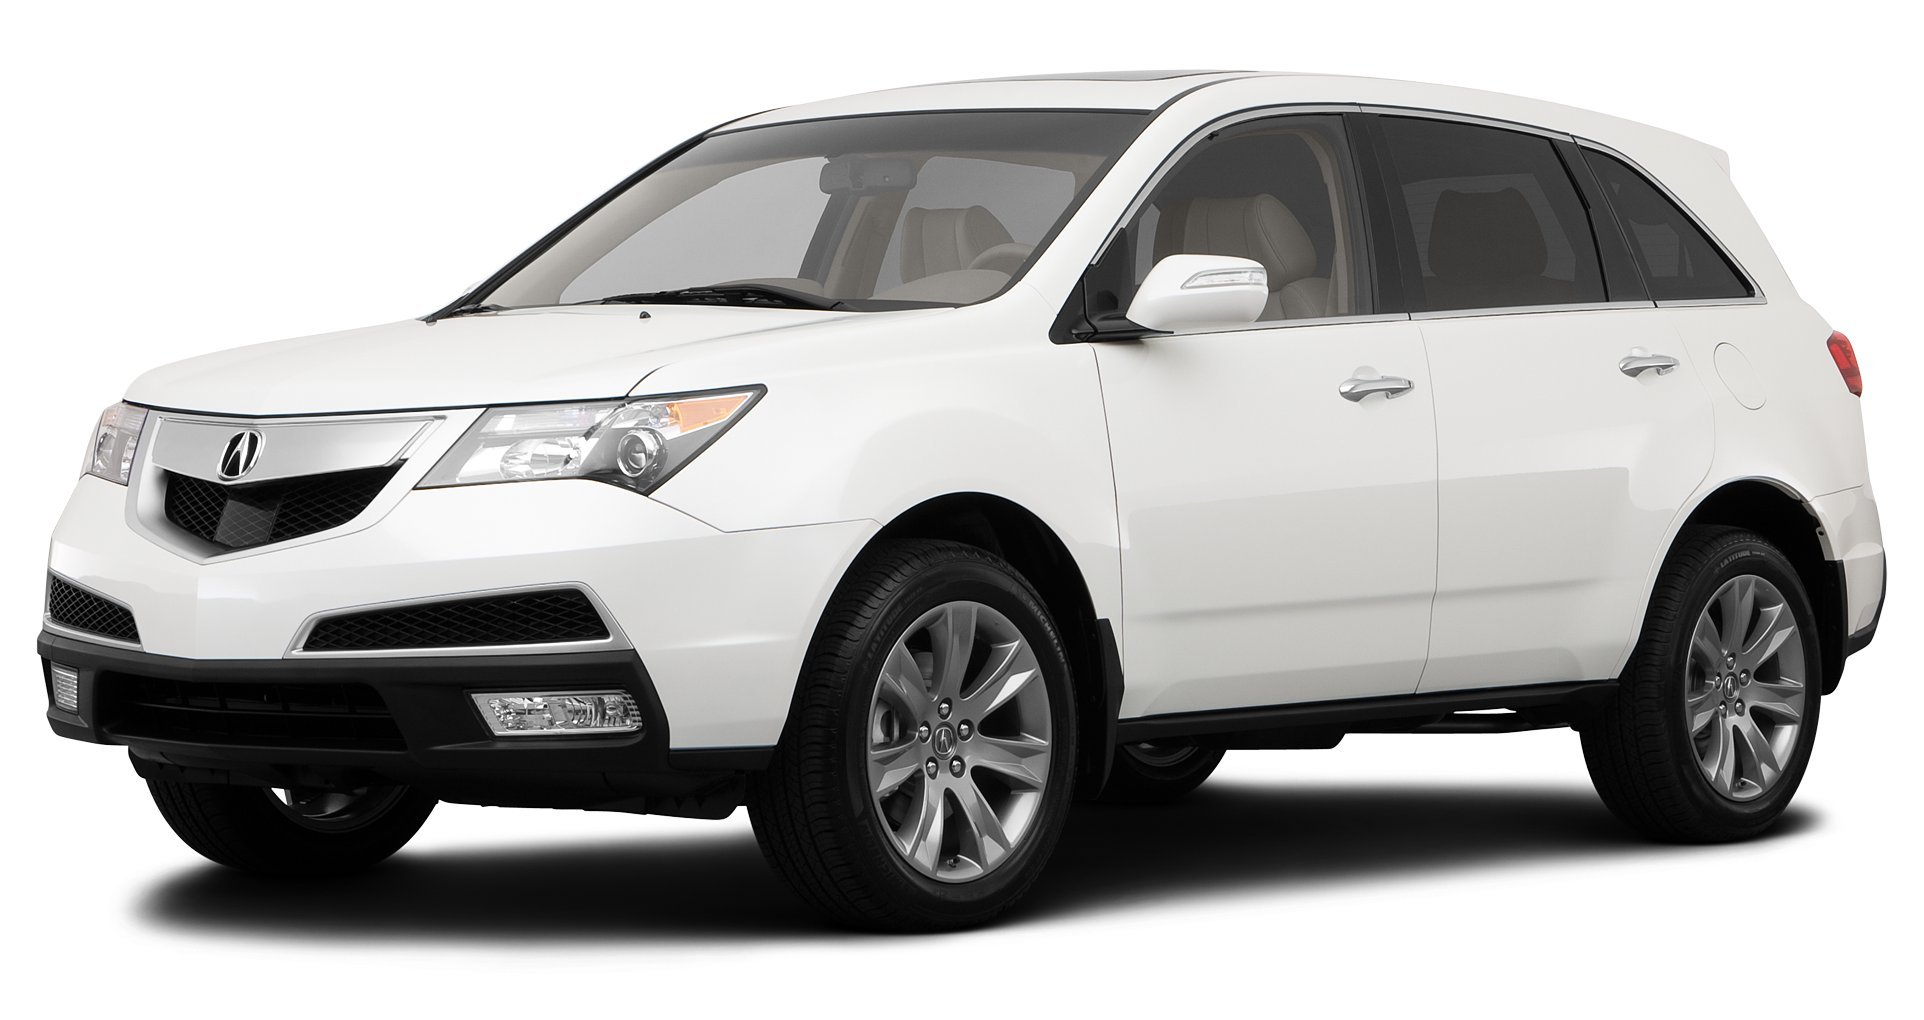 ... 2013 Acura MDX Advance Package, All Wheel Drive 4-Door ...